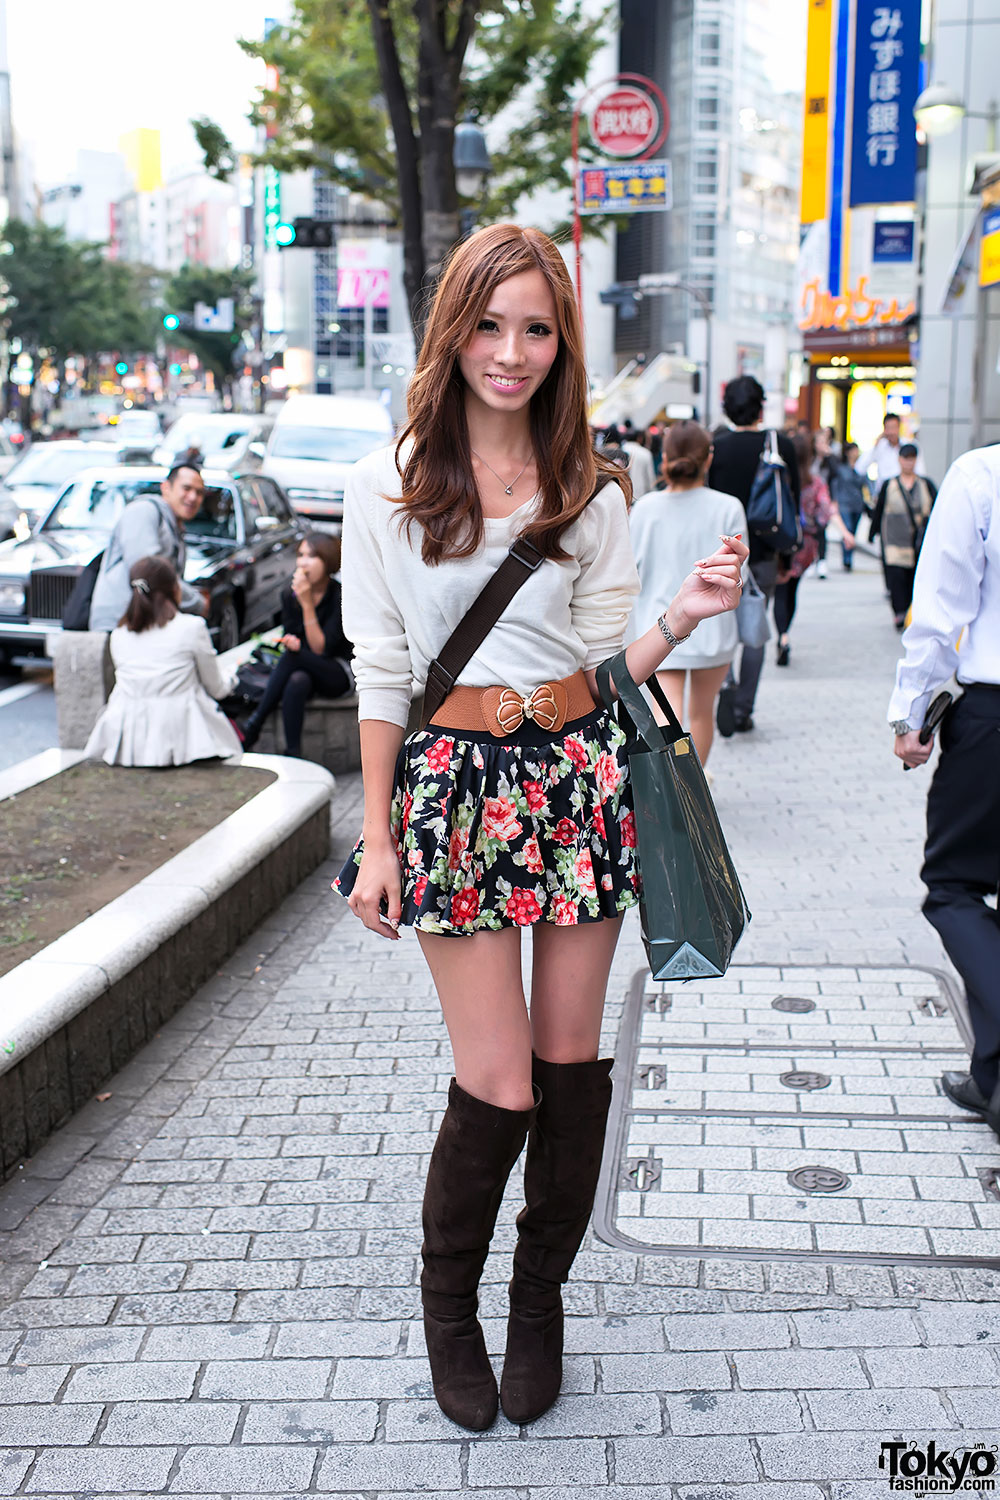 Shibuya Girl In Flower Skirt Amp Suede Boots W Louis